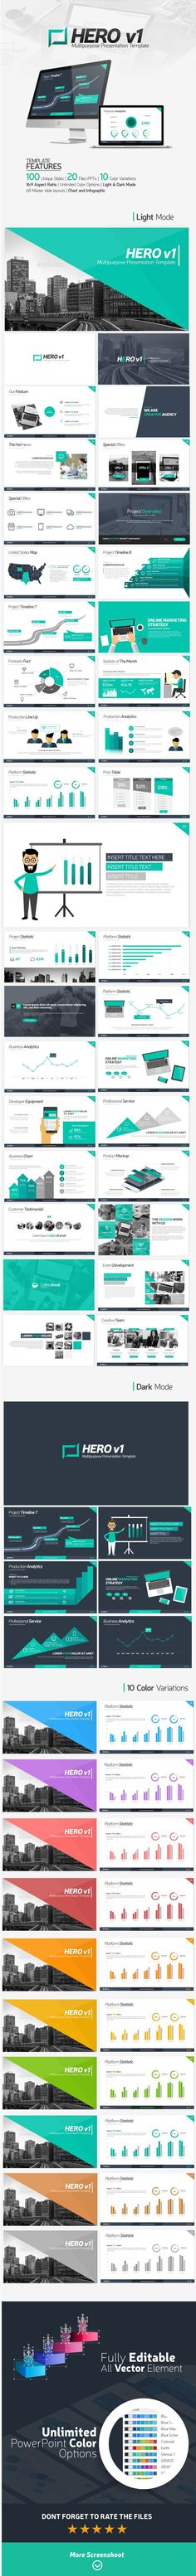 Business idea powerpoint template powerpoint presentation cool hero powerpoint presentation template only available here httpgraphicriveritemhero v1 presentation template16318628refpxcr toneelgroepblik Images